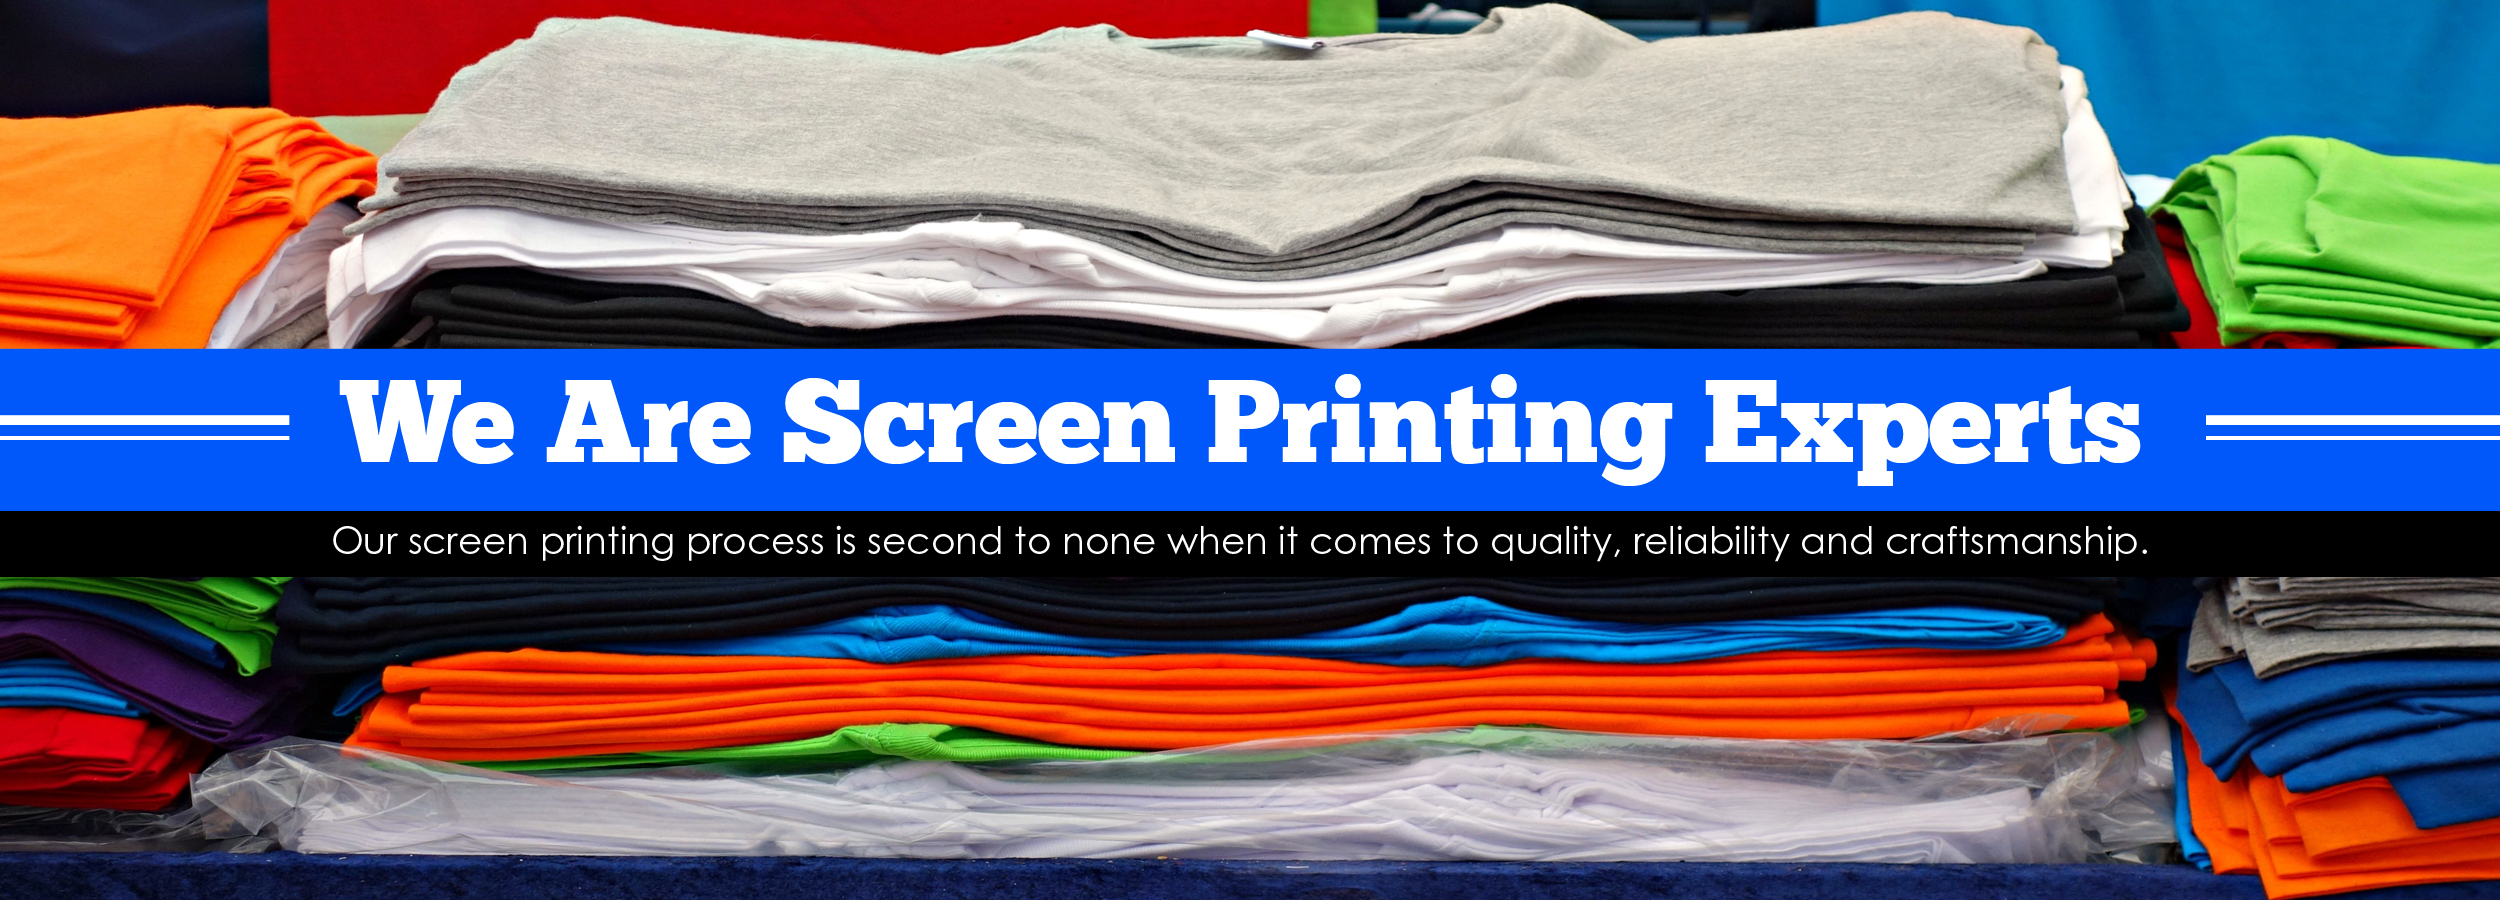 we-are-screen-printing-experts